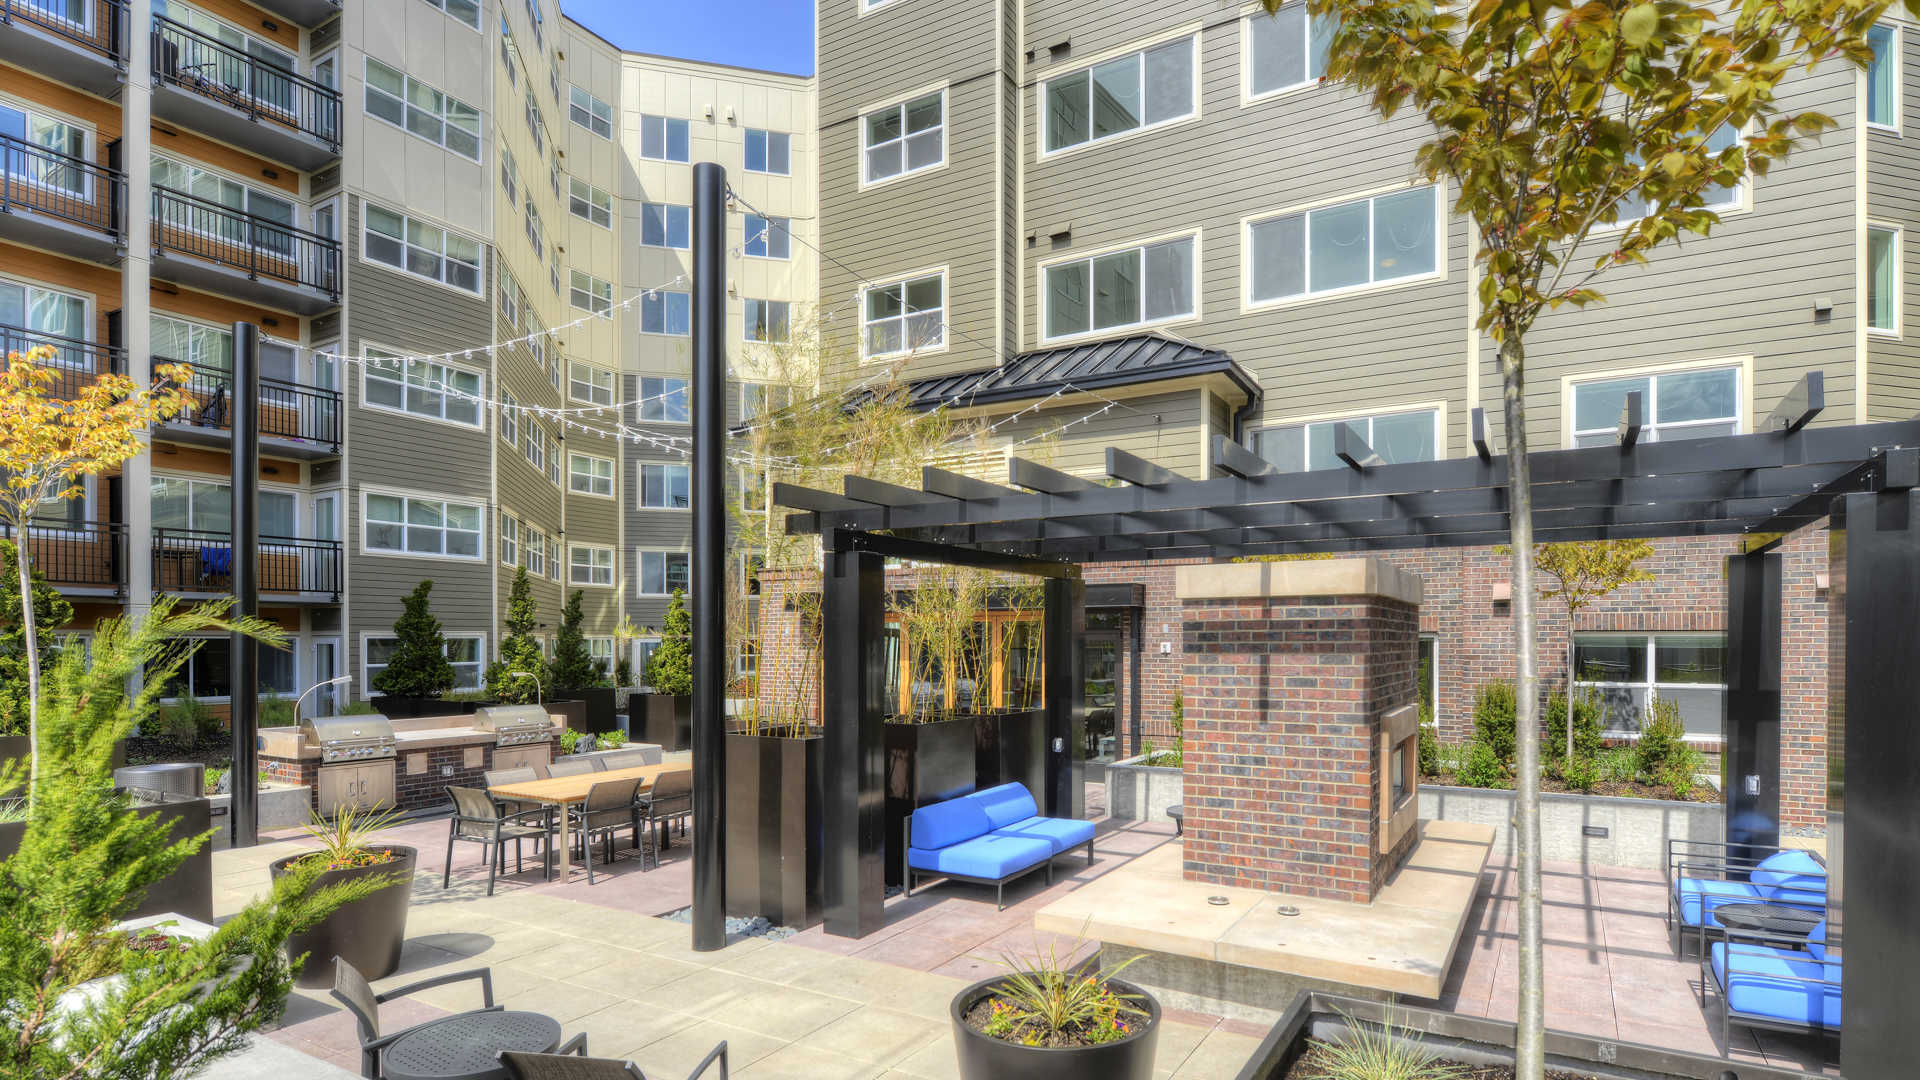 Surprising 100 Best Apartments In Seattle Wa With Pictures Download Free Architecture Designs Embacsunscenecom